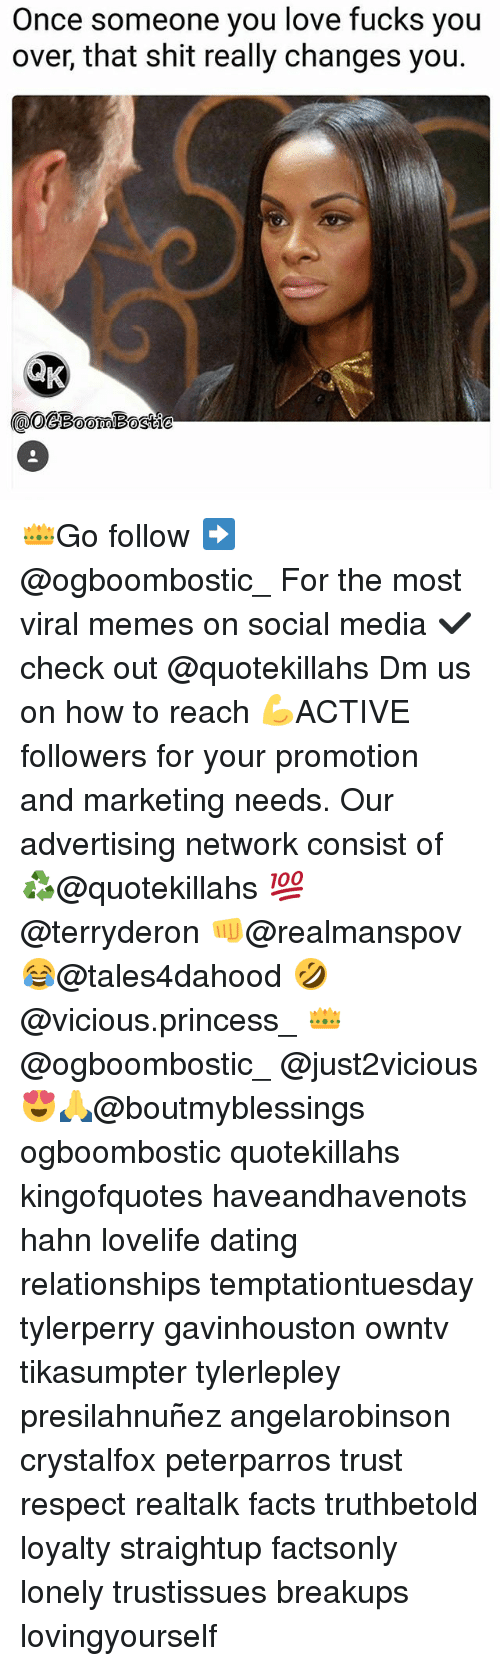 Dating, Facts, and Love: Once someone you love fucks you  over, that shit really changes you.  GBomBostie 👑Go follow ➡@ogboombostic_ For the most viral memes on social media ✔check out @quotekillahs Dm us on how to reach 💪ACTIVE followers for your promotion and marketing needs. Our advertising network consist of ♻@quotekillahs 💯@terryderon 👊@realmanspov 😂@tales4dahood 🤣@vicious.princess_ 👑@ogboombostic_ @just2vicious😍🙏@boutmyblessings ogboombostic quotekillahs kingofquotes haveandhavenots hahn lovelife dating relationships temptationtuesday tylerperry gavinhouston owntv tikasumpter tylerlepley presilahnuñez angelarobinson crystalfox peterparros trust respect realtalk facts truthbetold loyalty straightup factsonly lonely trustissues breakups lovingyourself